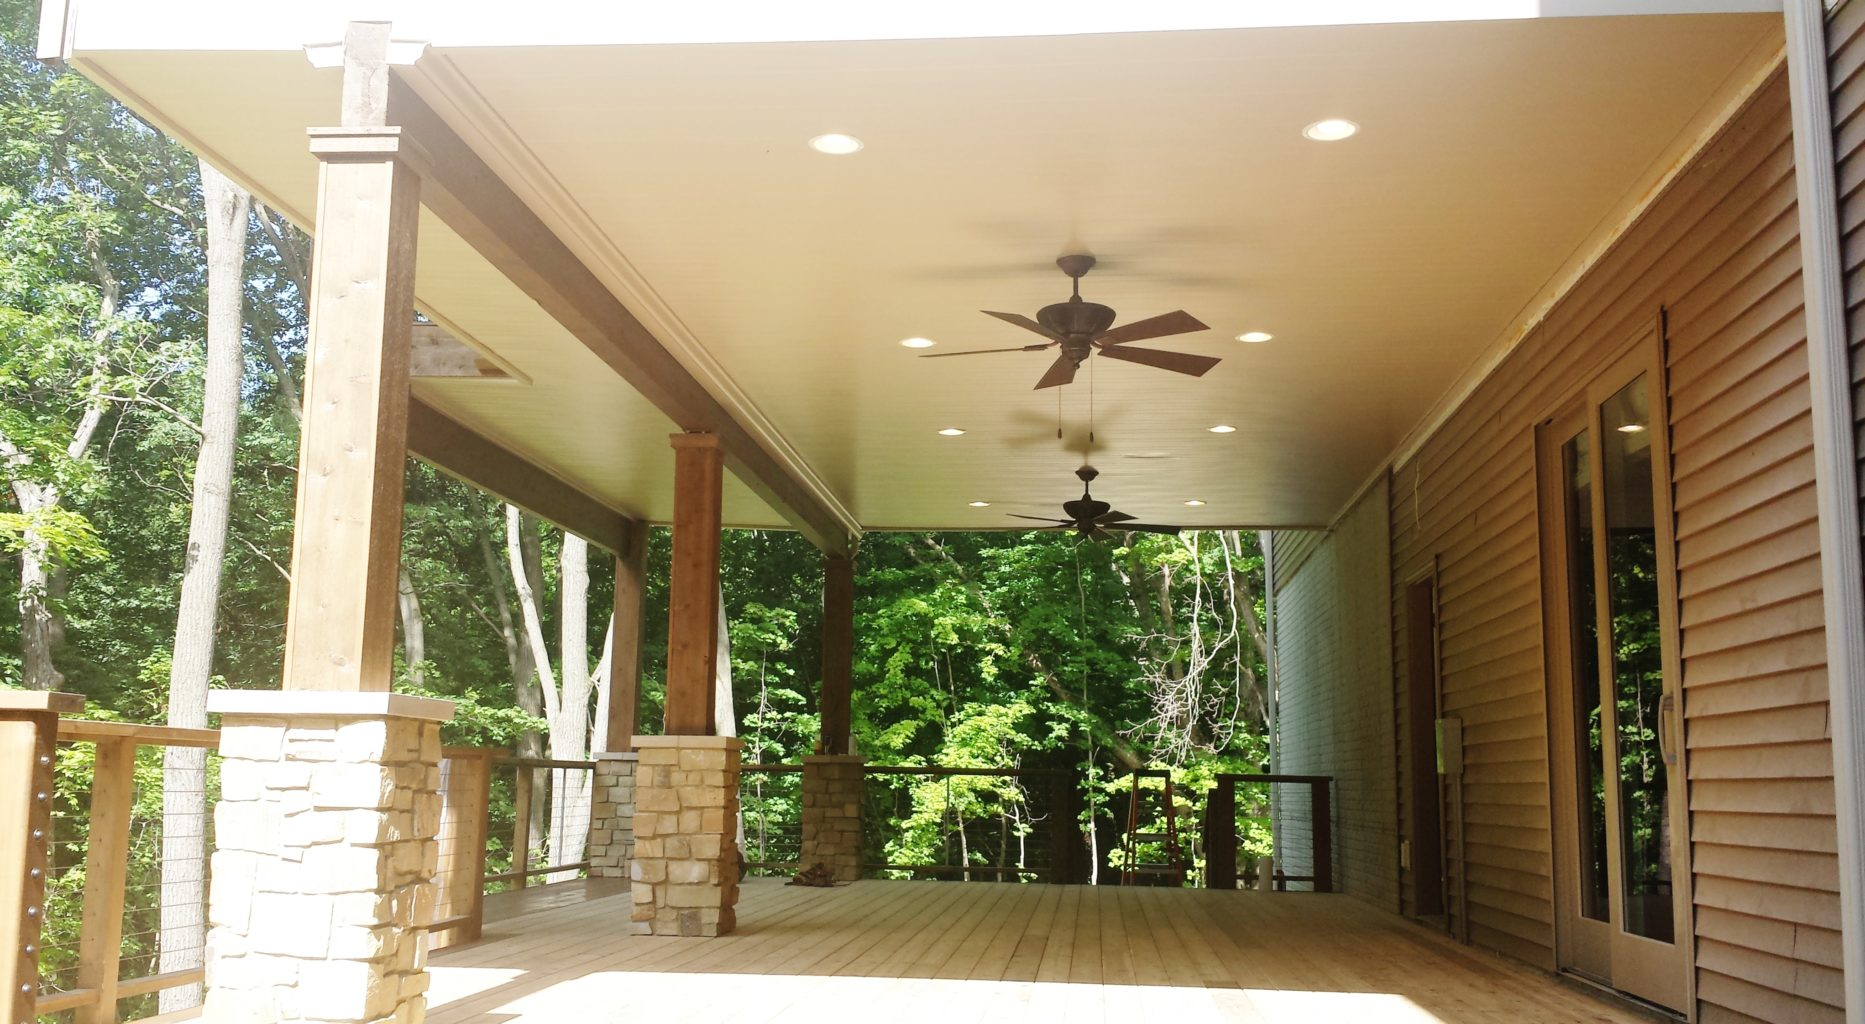 Underdeck ceiling with double fans